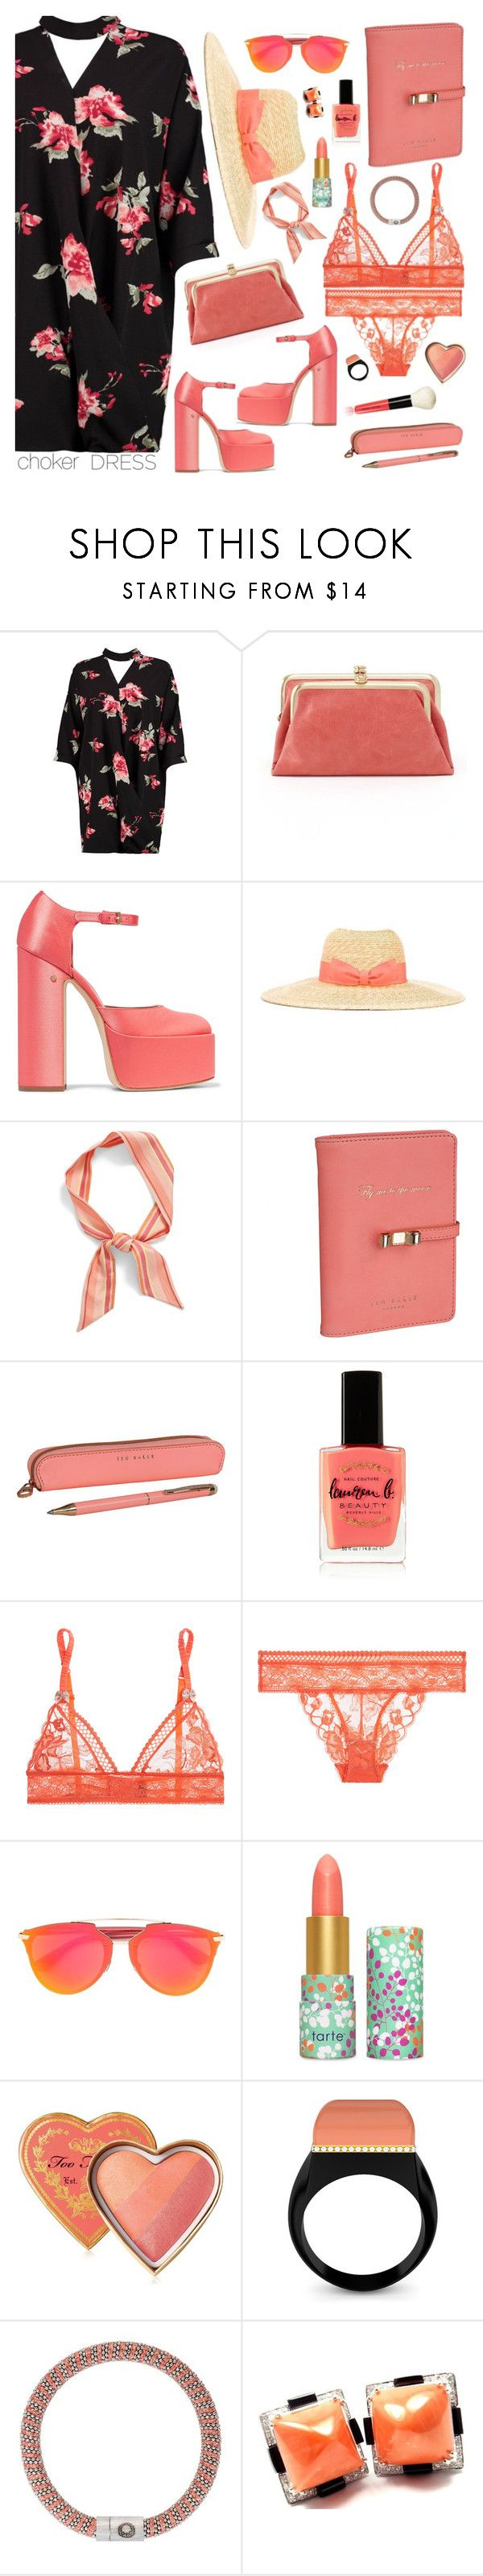 """Coral"" by mmk2k ❤ liked on Polyvore featuring Boohoo, HOBO, Laurence Dacade, Lanvin, Echo, Ted Baker, Lauren B. Beauty, STELLA McCARTNEY, tarte and Too Faced Cosmetics"